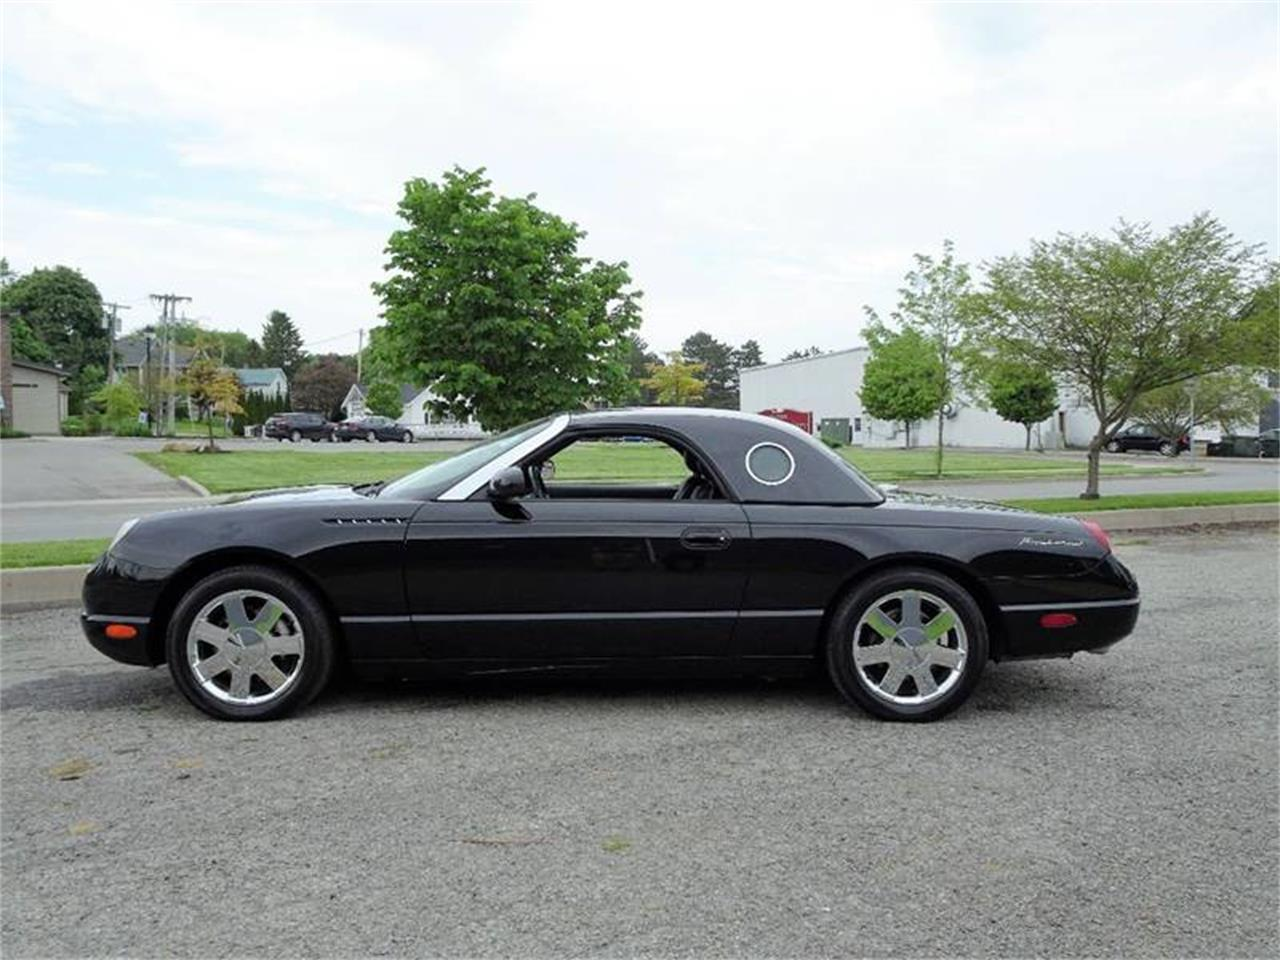 Large Picture of '02 Ford Thunderbird located in New York - $22,750.00 Offered by Great Lakes Classic Cars - Q9HB